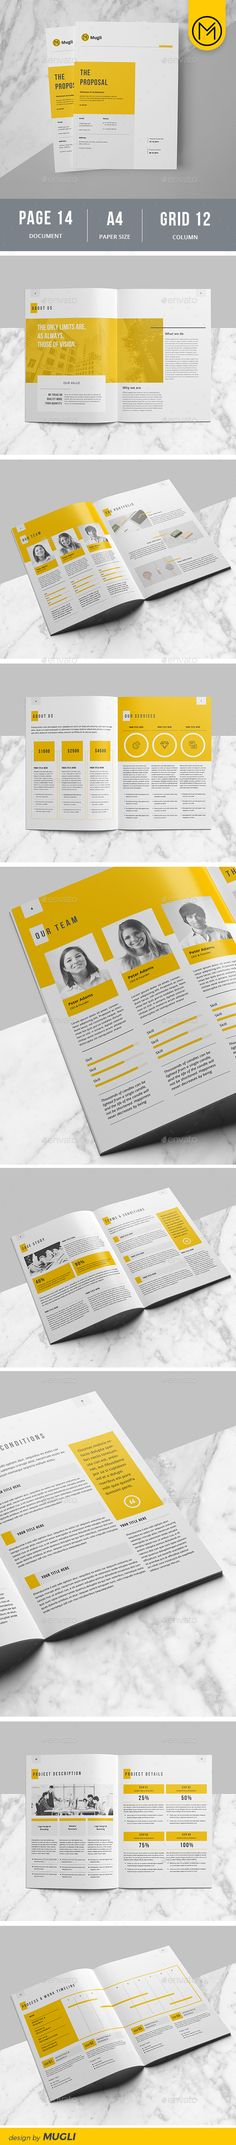 Marketing Agency Proposal Template - Free Sample New Business - photography proposal template